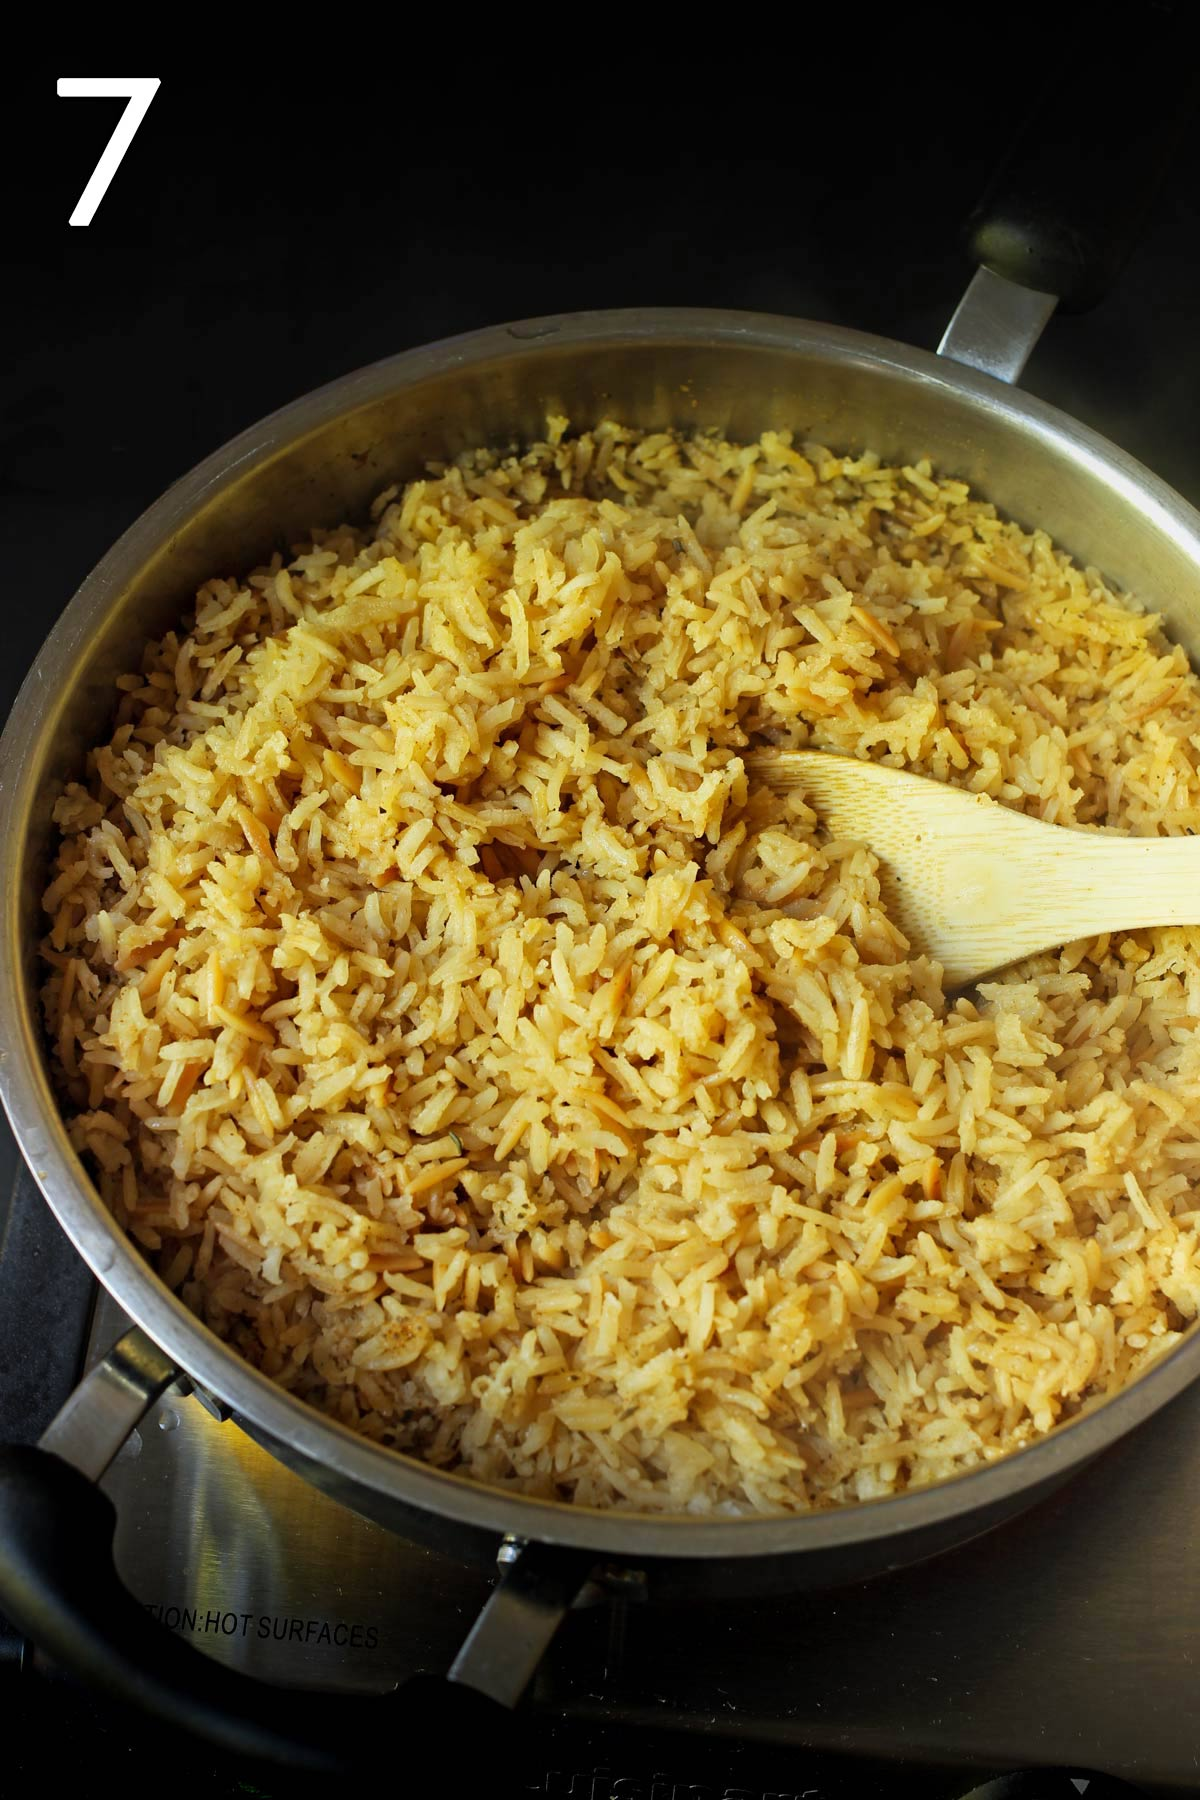 cooked rice in the pan with a wooden spoon.